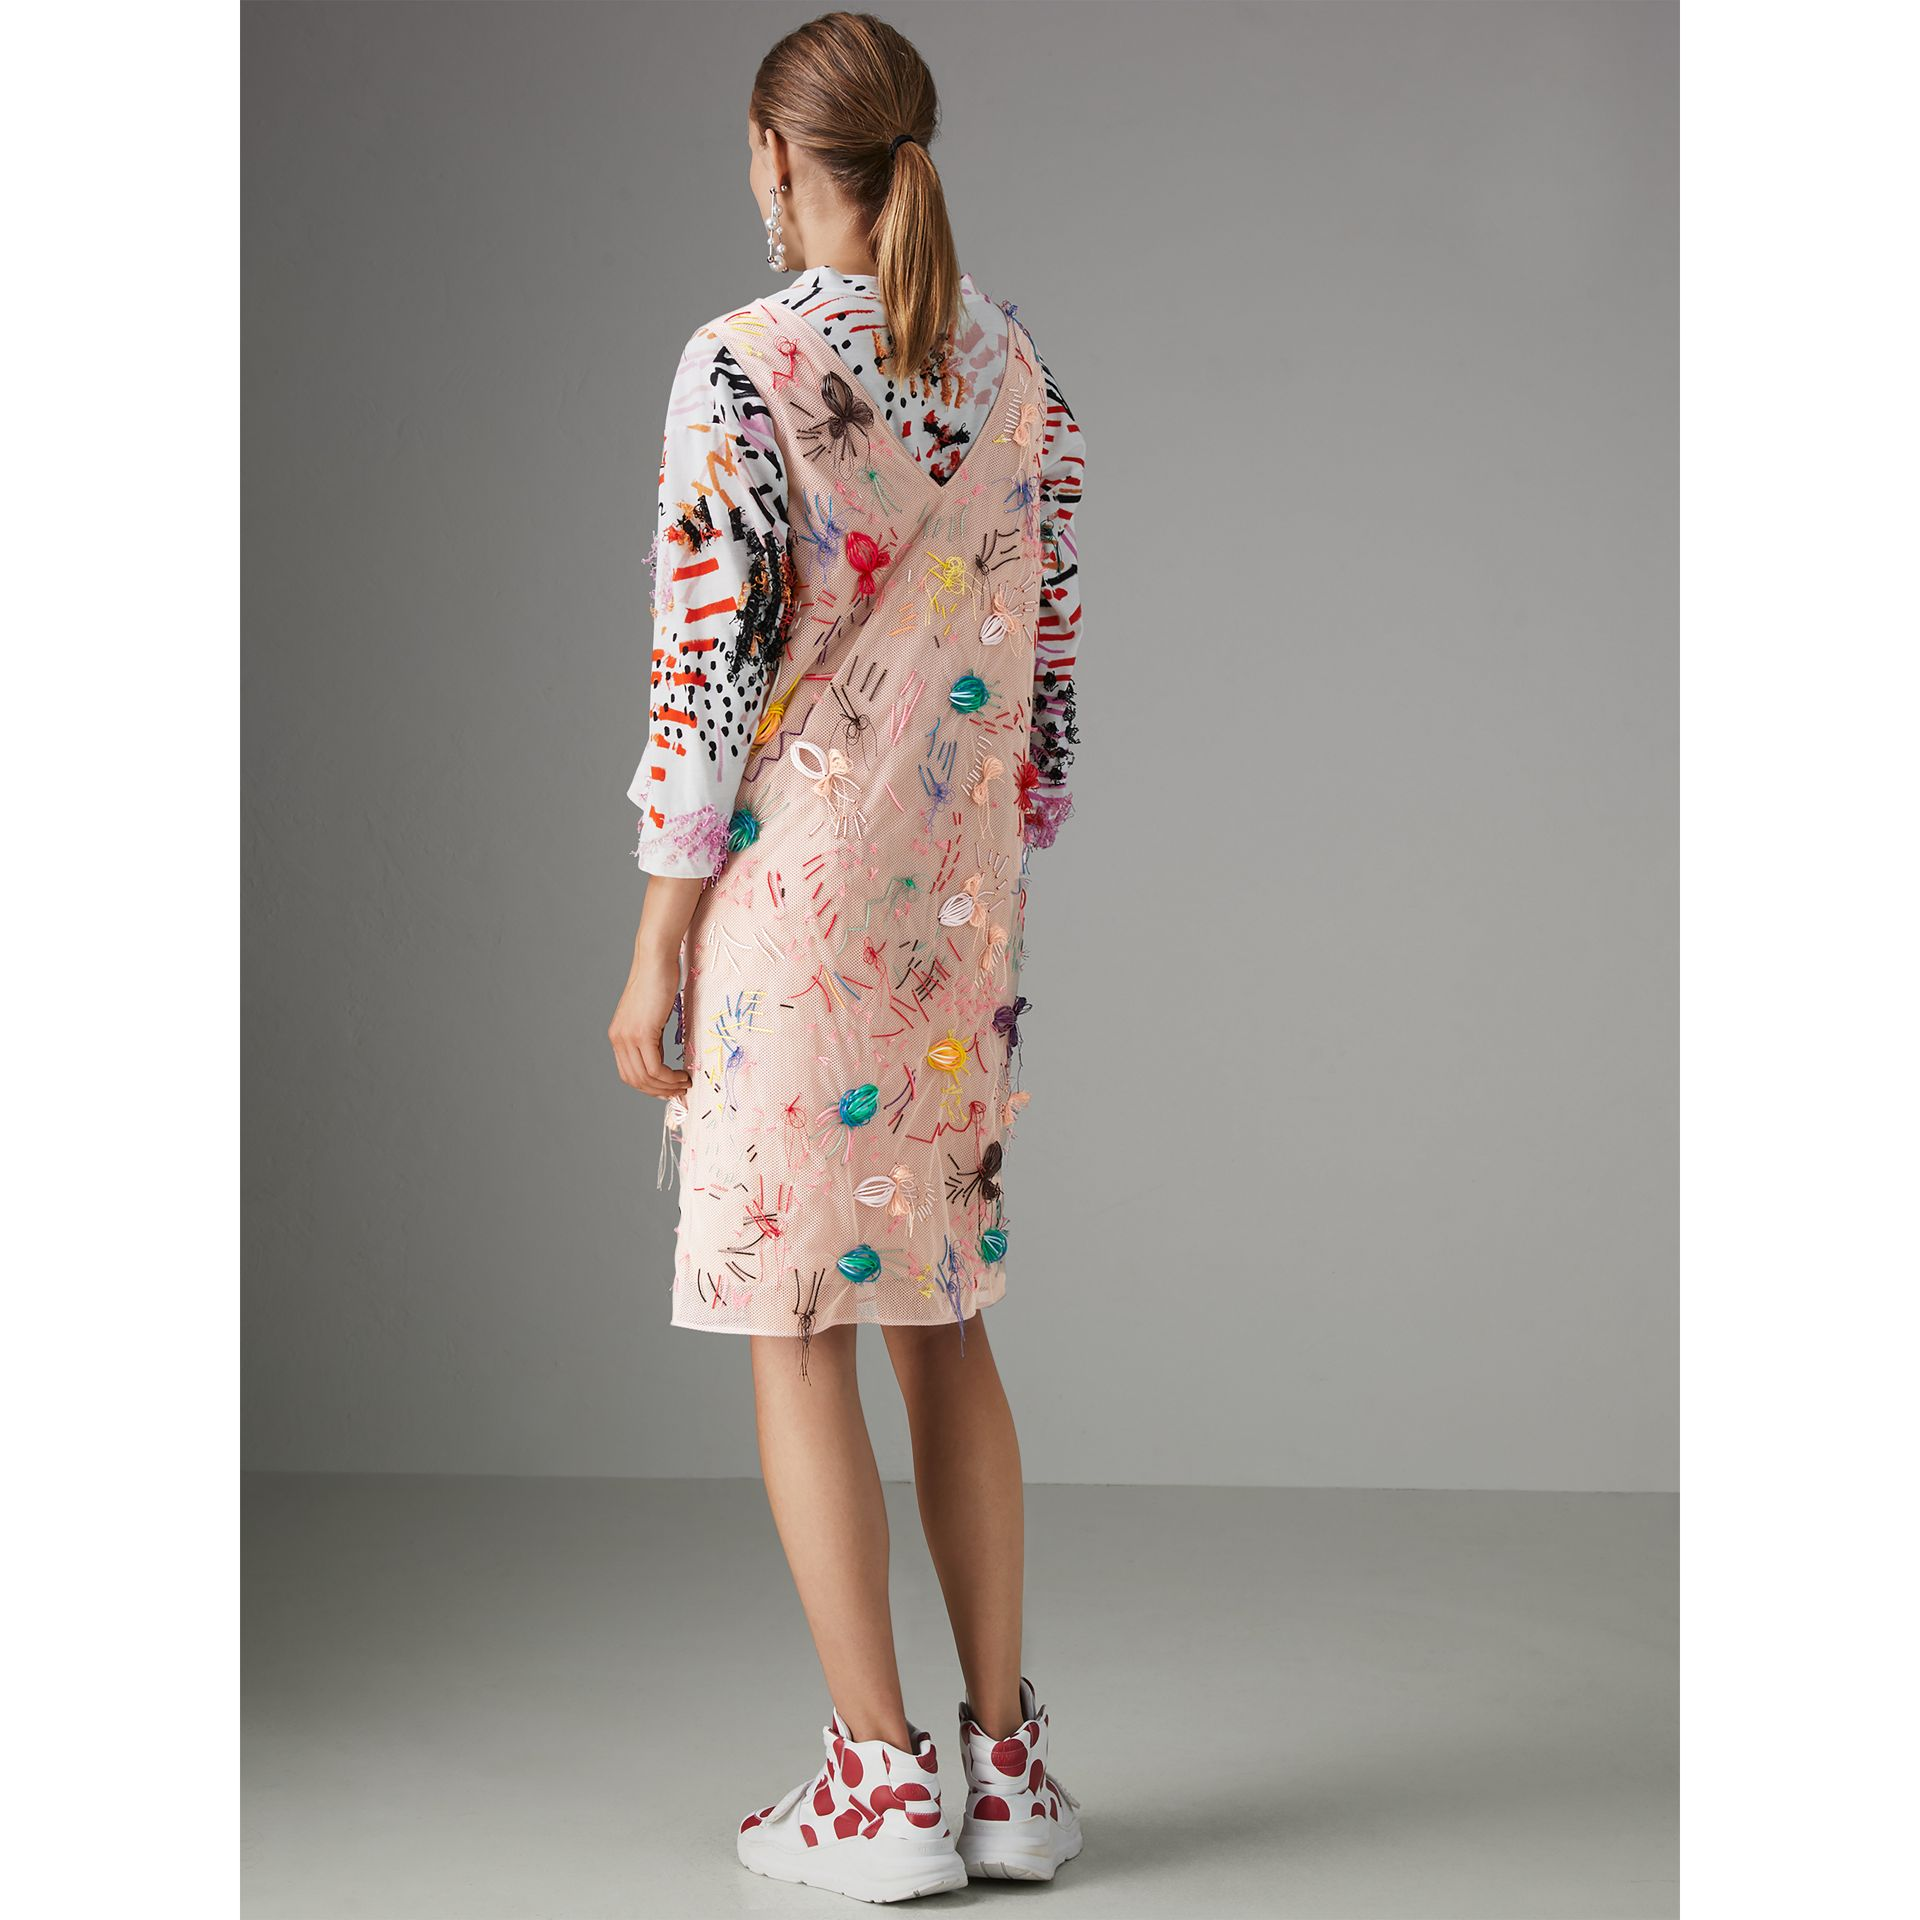 Embellished Sleeveless Dress in Pink - Women | Burberry United Kingdom - gallery image 2